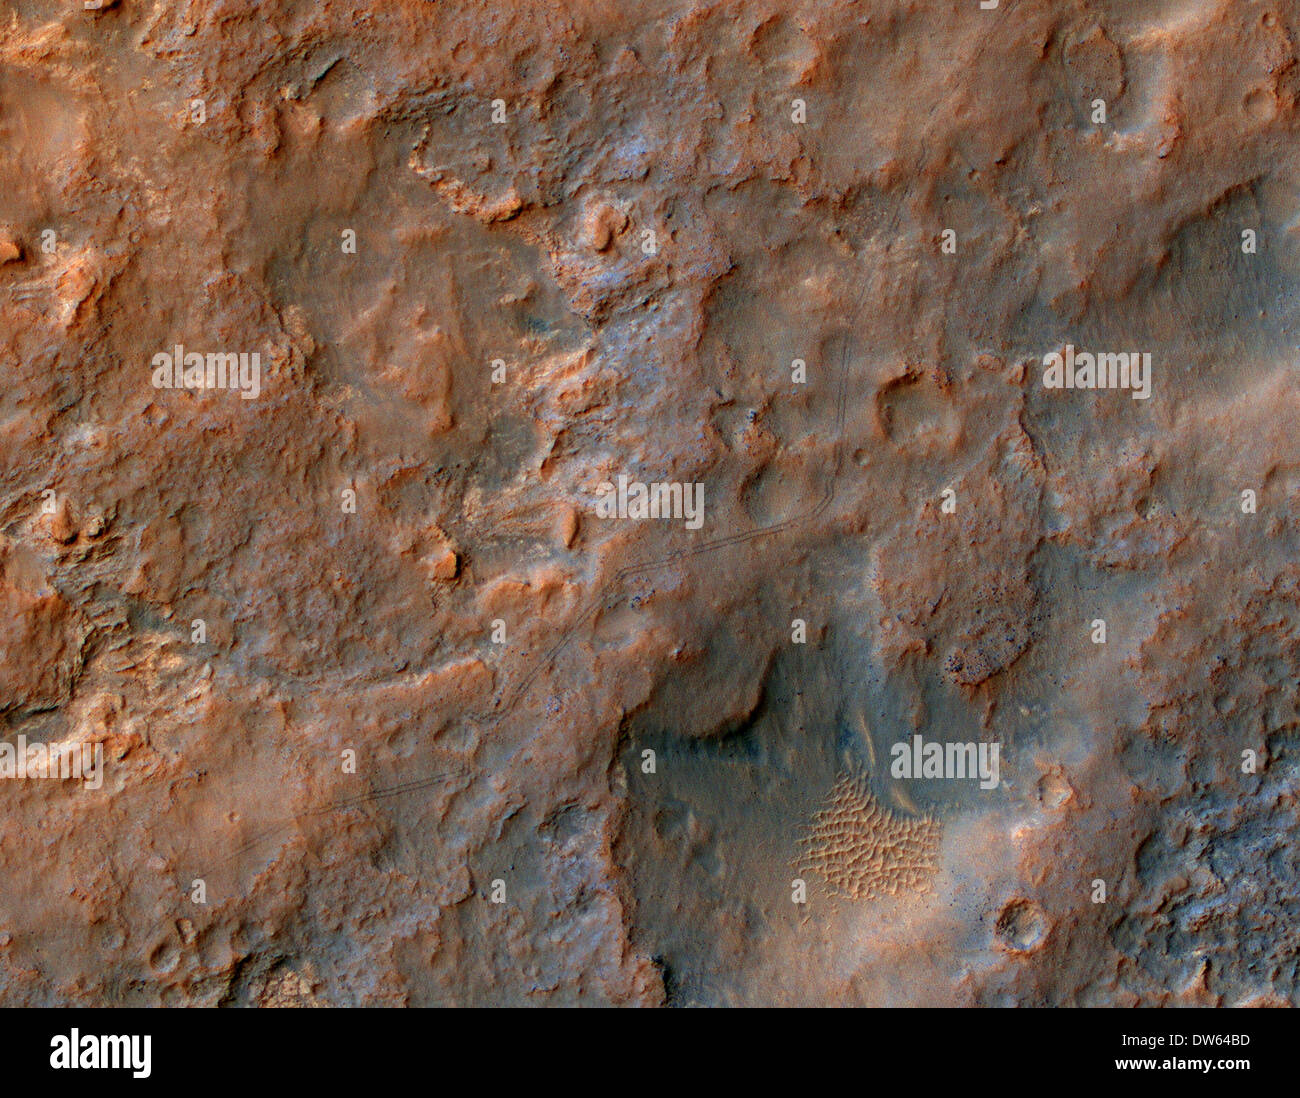 Visible tracks of the Mars rover Curiosity seen from aerial view seen from NASA's Mars Reconnaissance Orbiter. - Stock Image